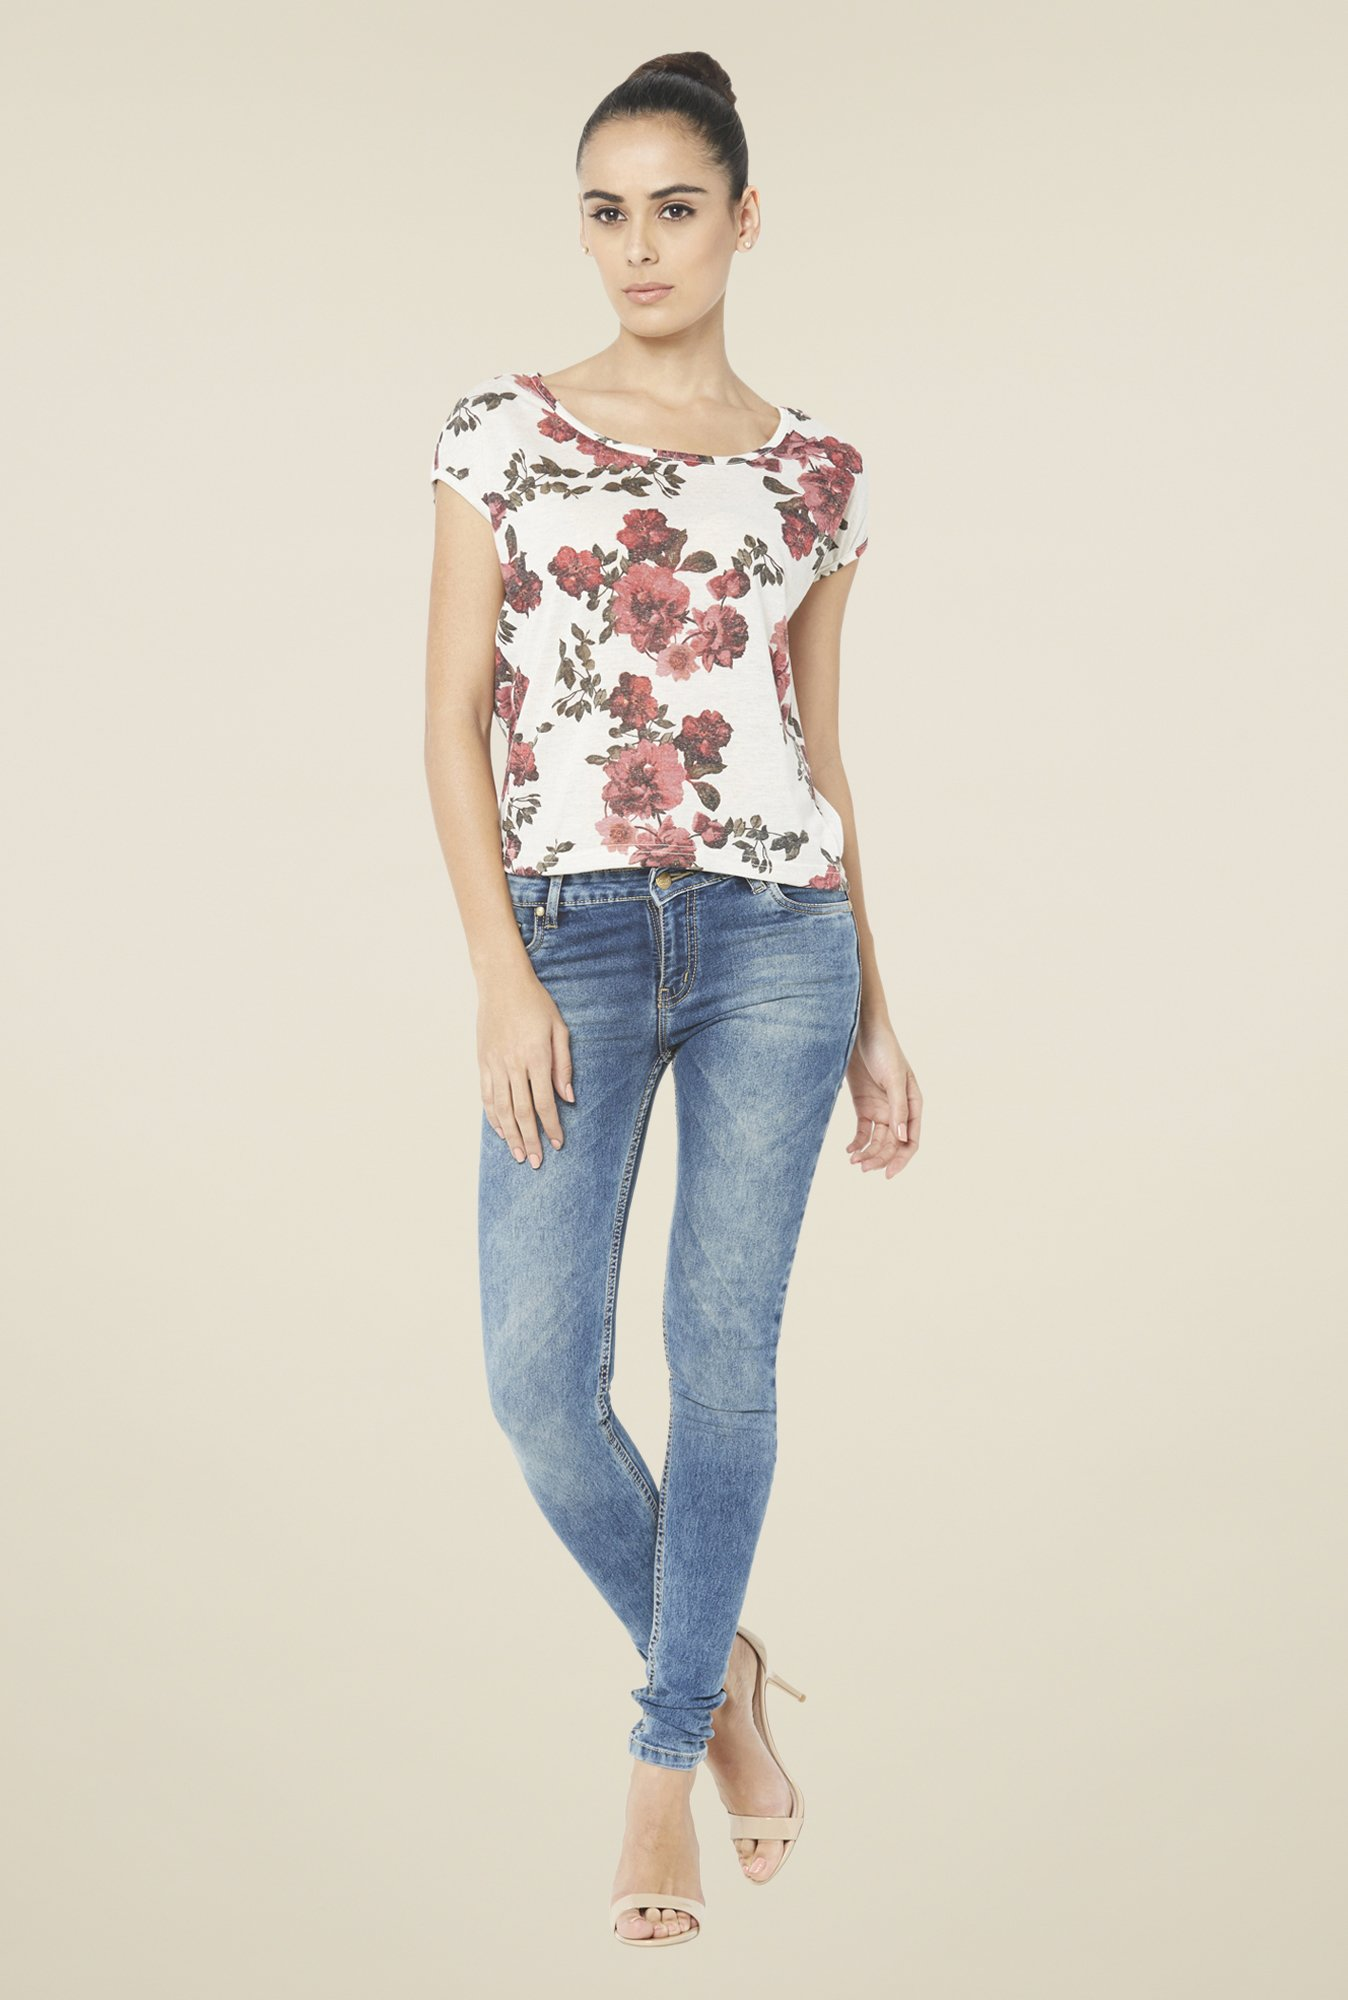 Globus White Floral Printed Short Sleeve Top